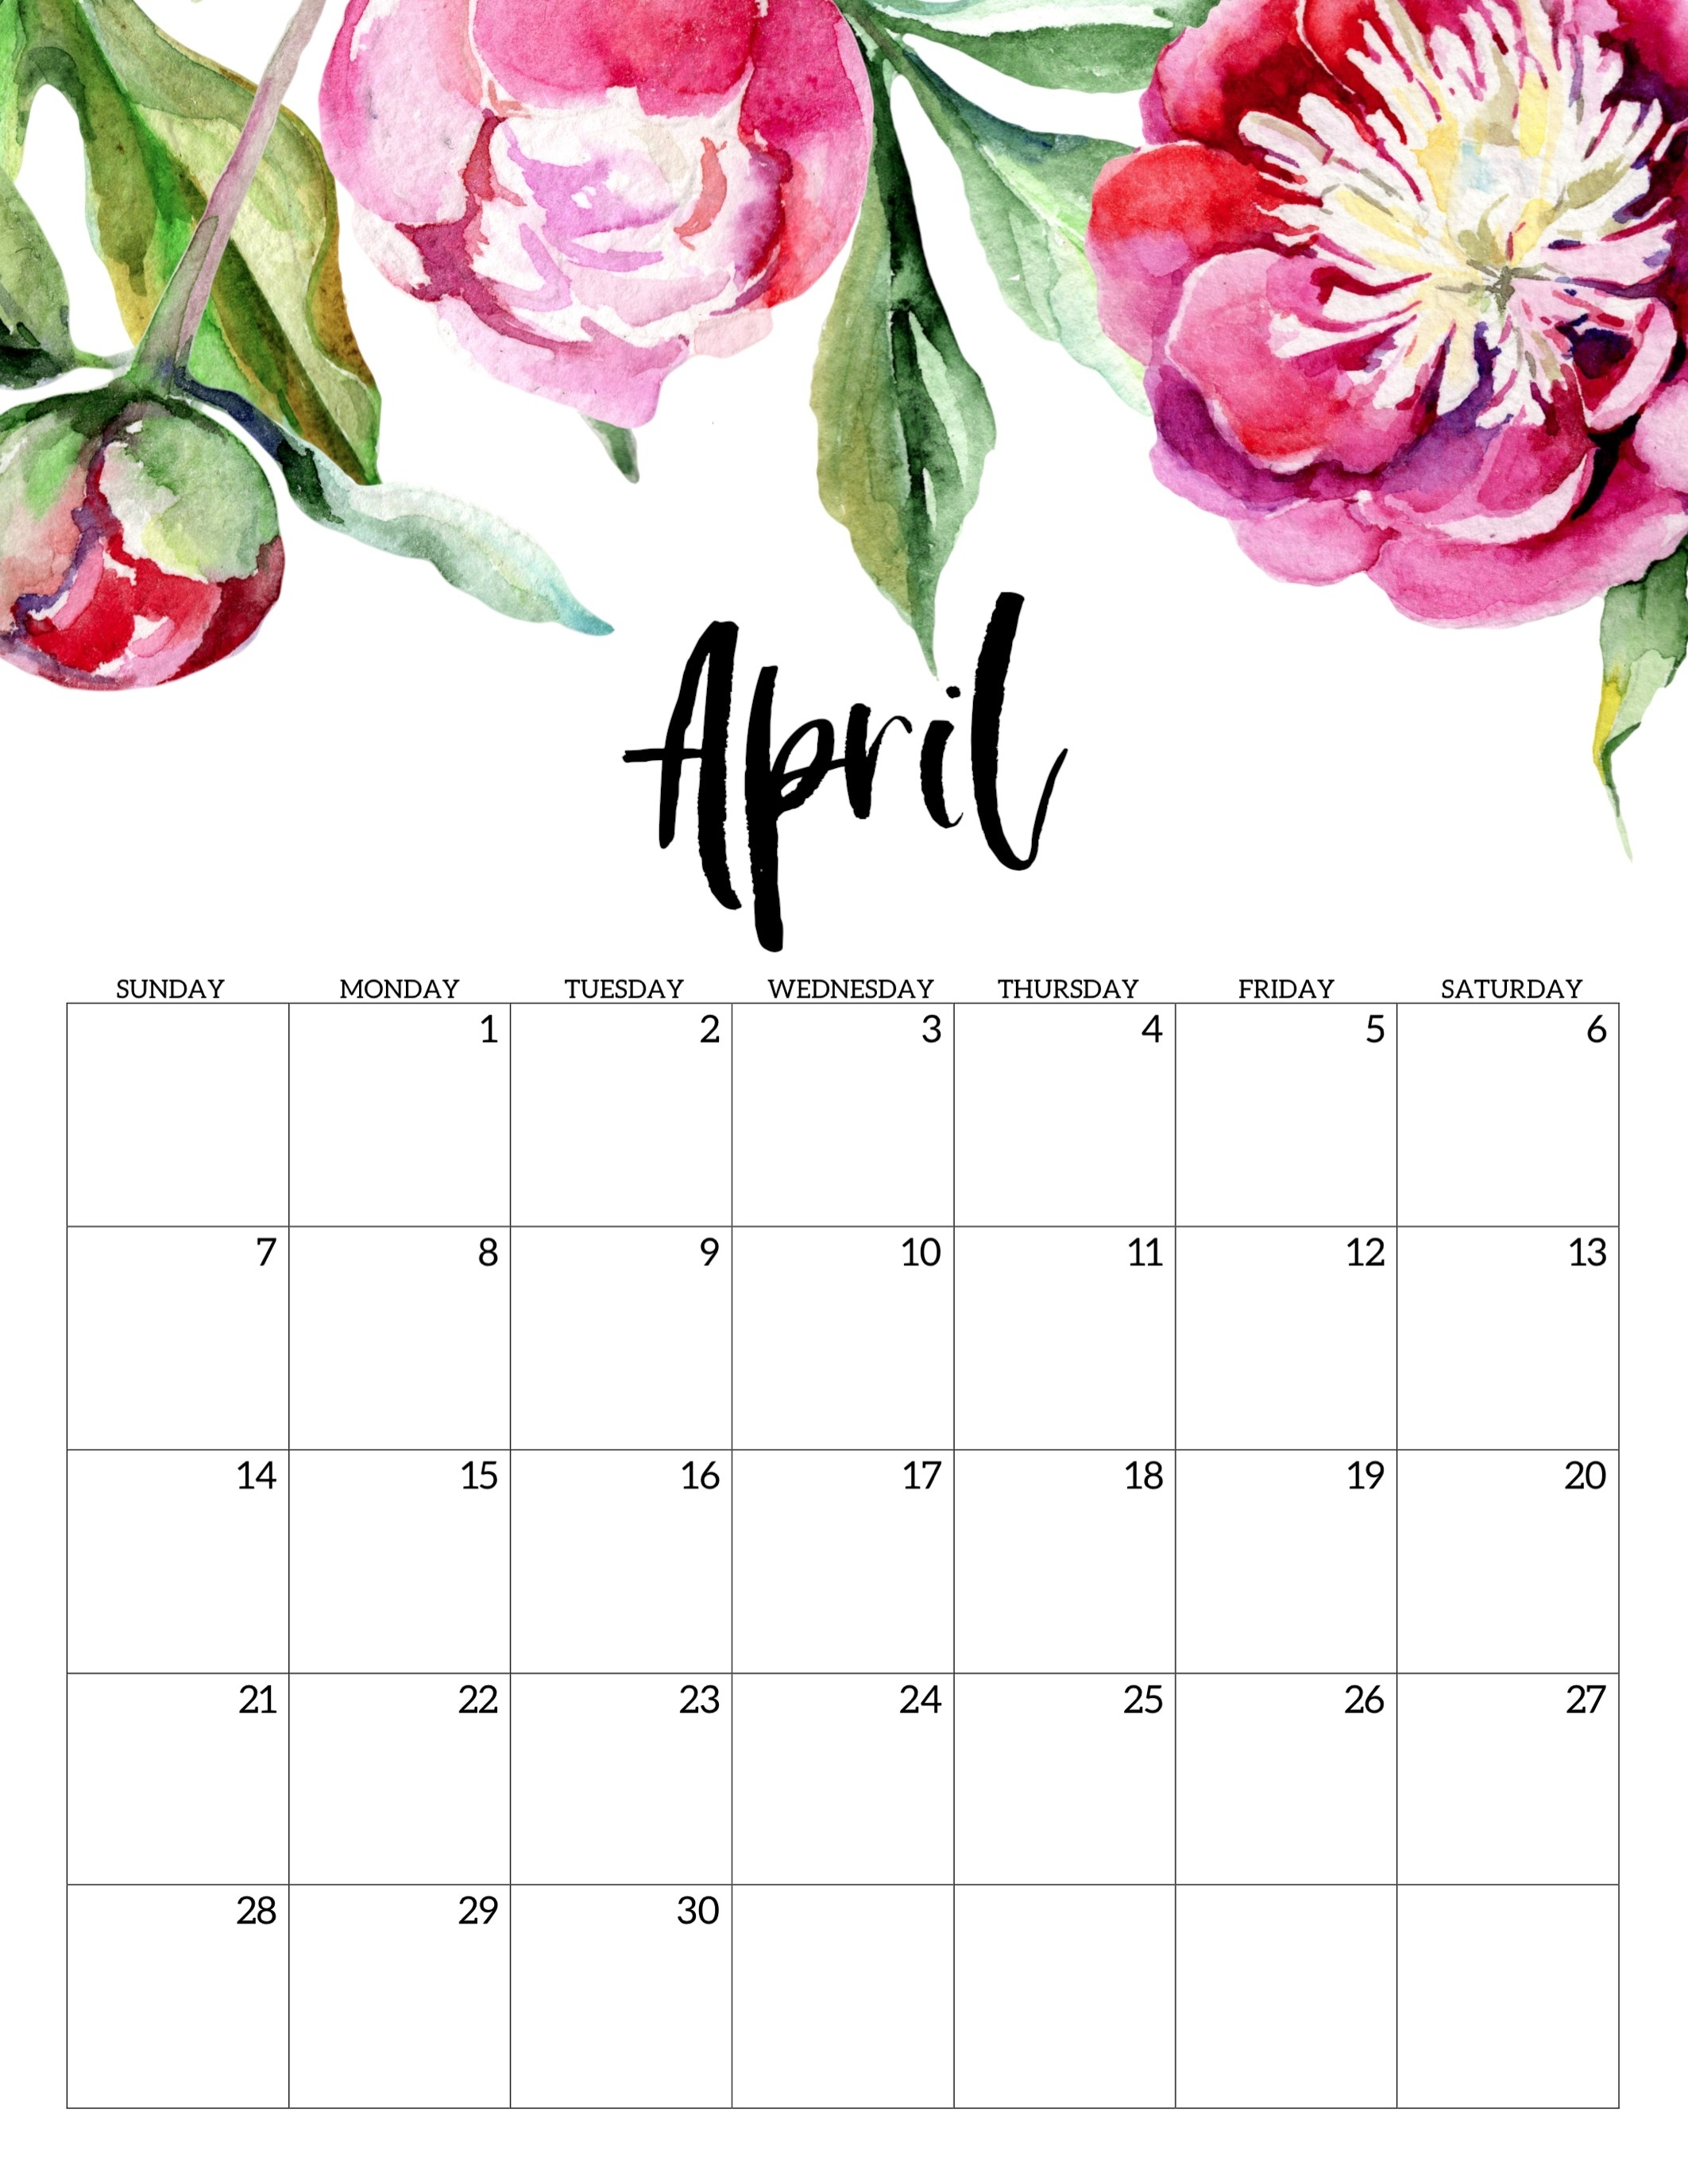 Free Printable Calendar 2019 - Floral - Paper Trail Design intended for 2019 2020 Girly Calendar Printable